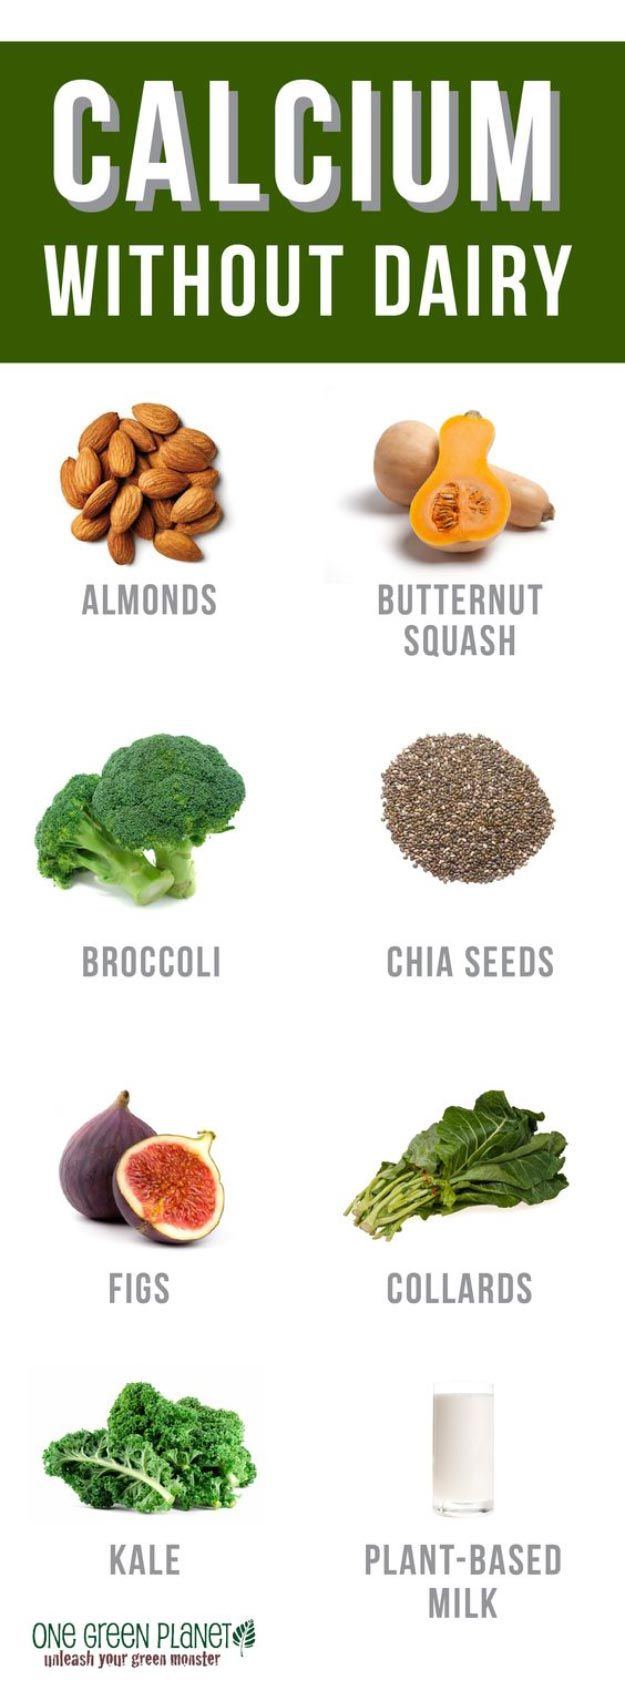 Calcium without the Dairy | 9 Ways To Eat A More Plant Based Diet For Healthy Happy Homesteading | Healthier and Greener Food Ideas by Pioneer Settler at http://pioneersettler.com/plant-based-diet/